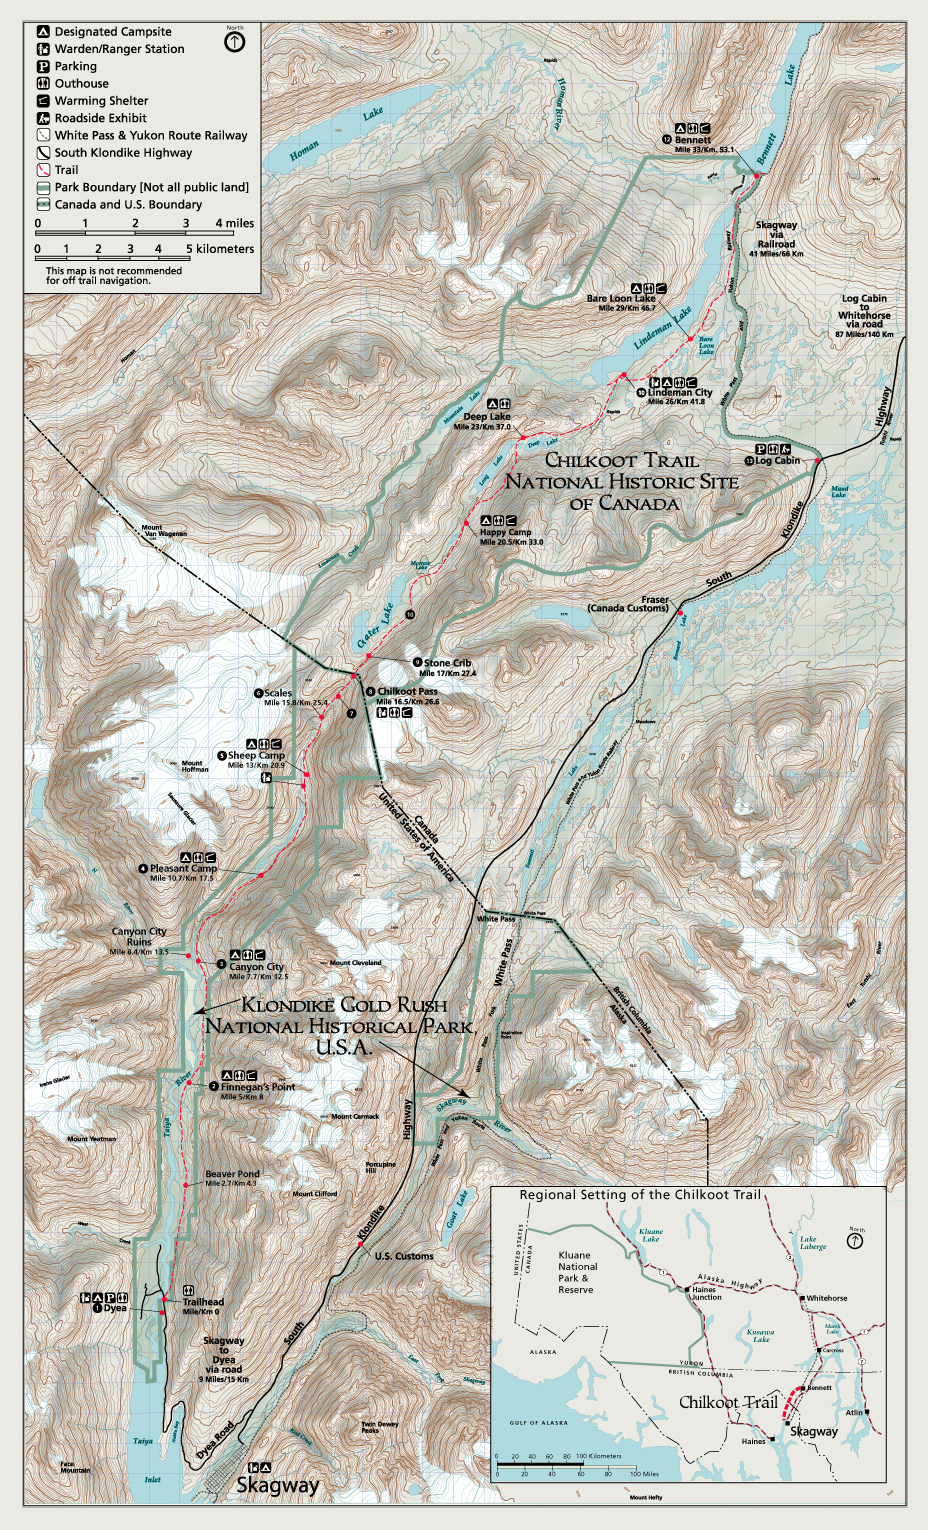 Chilkoot Trail Elevation Map.Hiking The Chilkoot Trail Chilkoot Trail National Historic Site